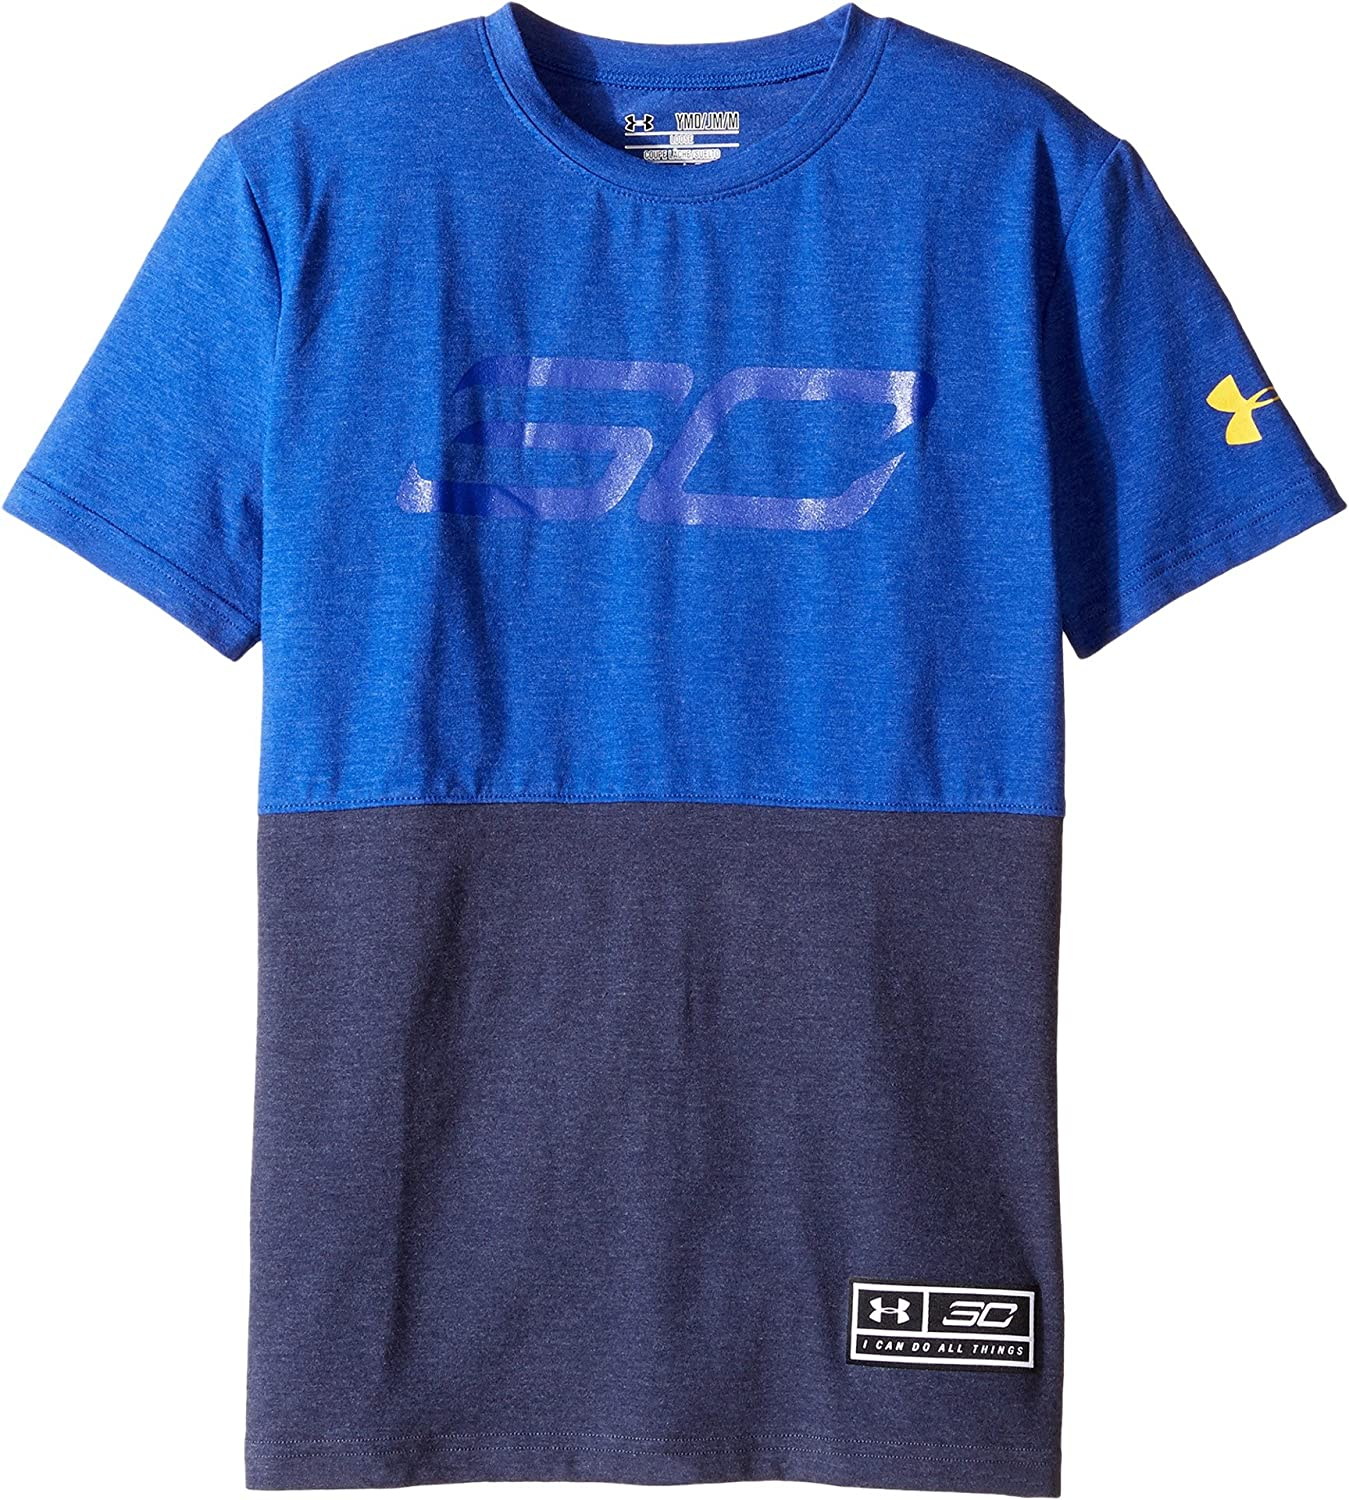 358bfc45adc0 Amazon.com  Under Armour Kids Mens Steph Curry 30 Long Tee (Big Kids)   Sports   Outdoors